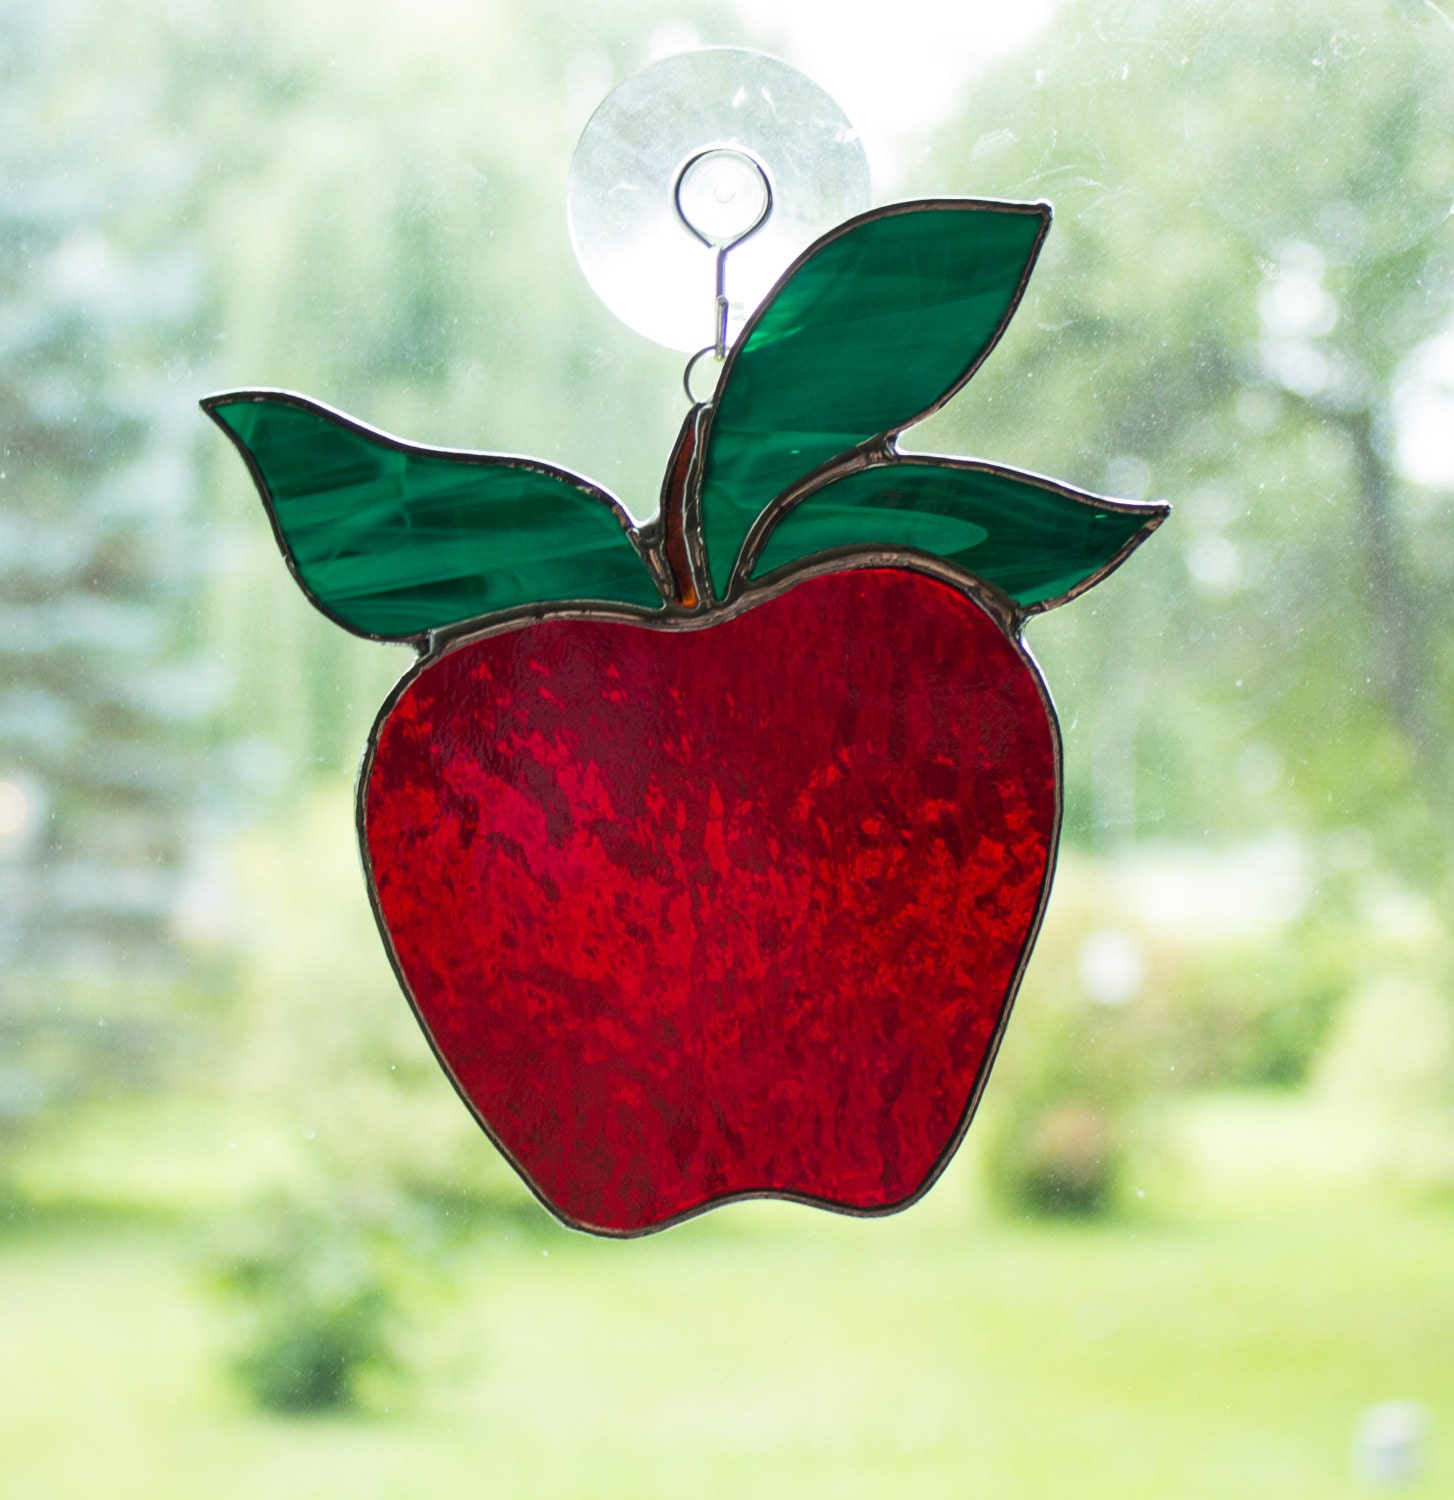 Green Apple Decorations For Kitchen Apple Decorations For Kitchen Apple Kitchen Decor Grape Kitchen